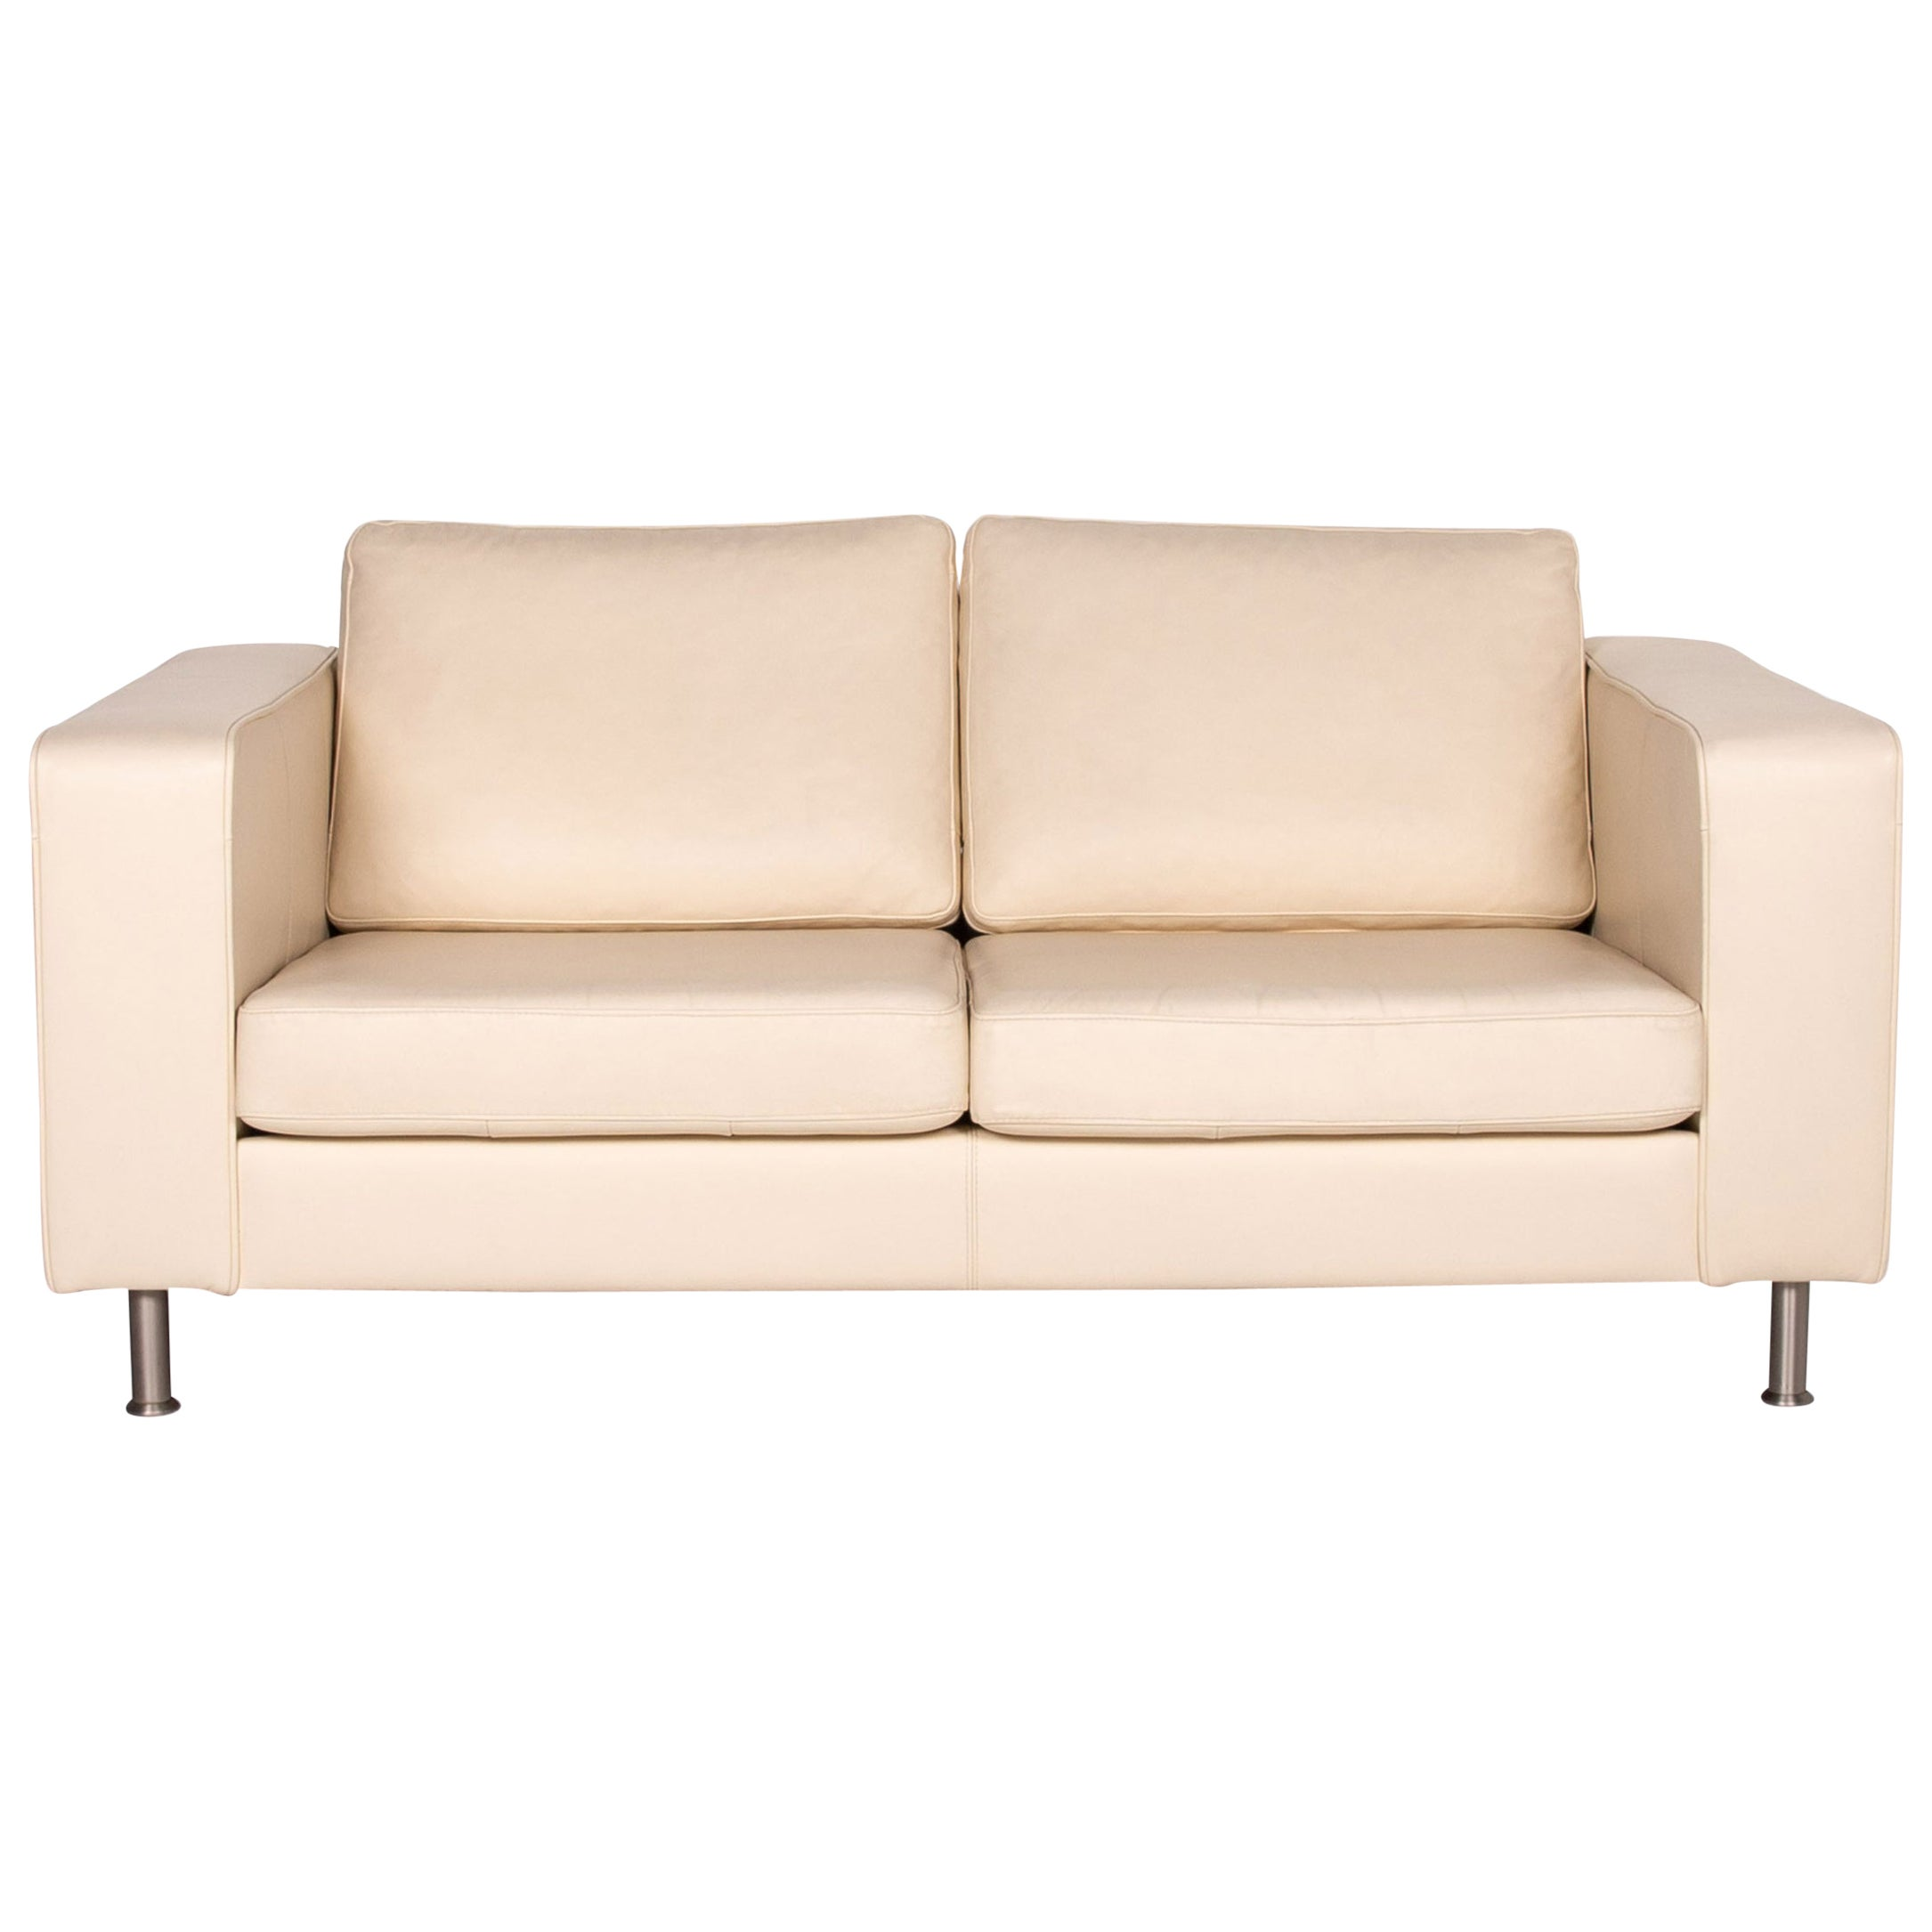 BoConcept Leather Sofa Cream Two-Seat Couch